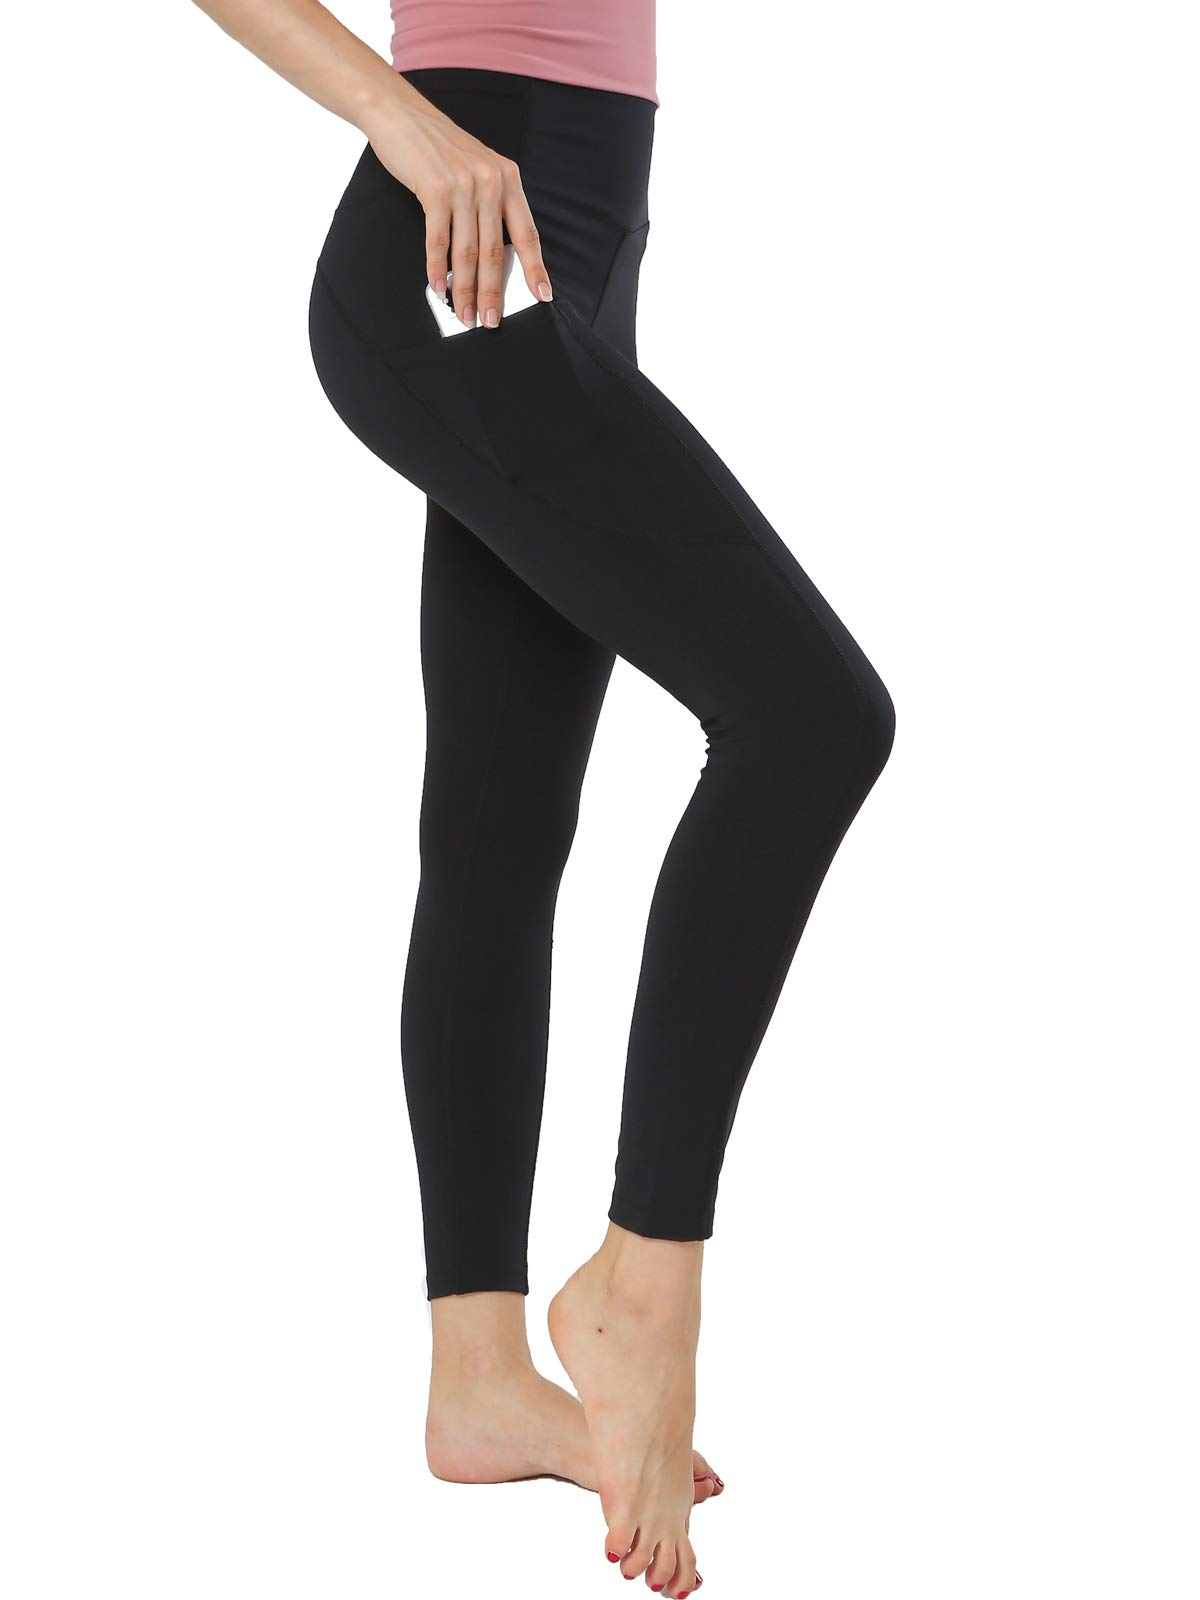 Flyily Women S Yoga Pants With Pockets H Buy Online In Canada At Desertcart